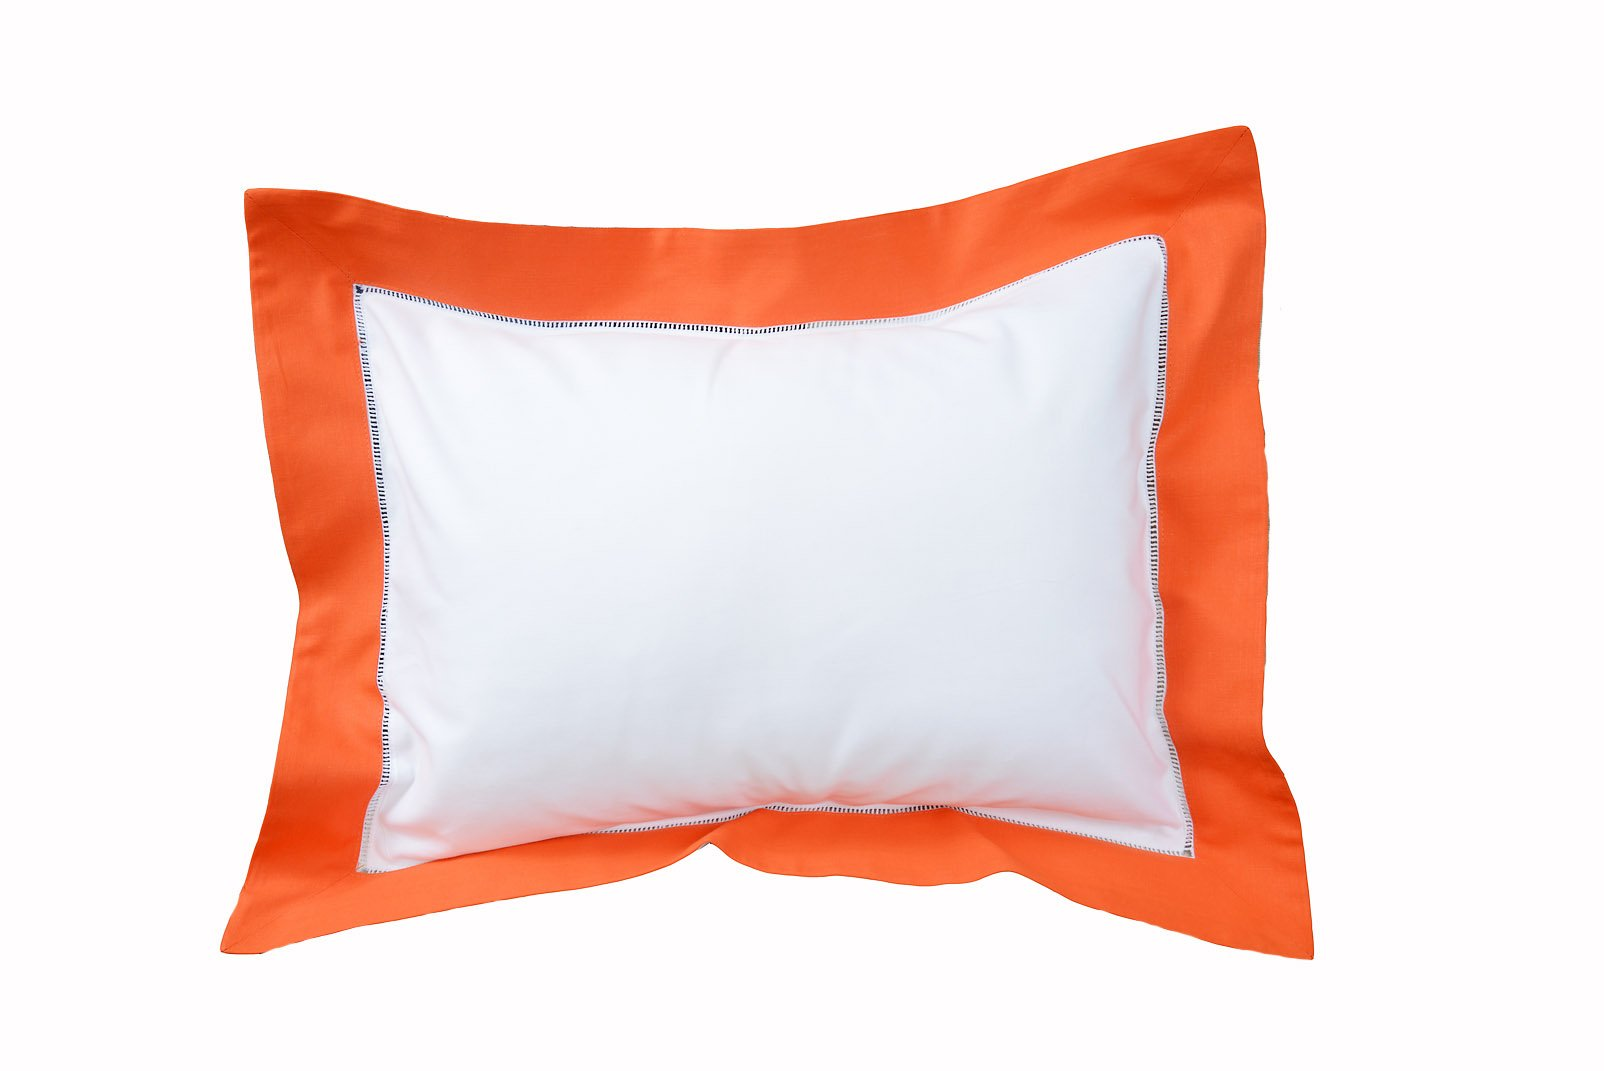 Baby Pillow Sham Color Trimming. 12x16 Baby Sham (Sham Only, No Filler Included). Ramie/Cotton farbics. (White with Orange Trims)